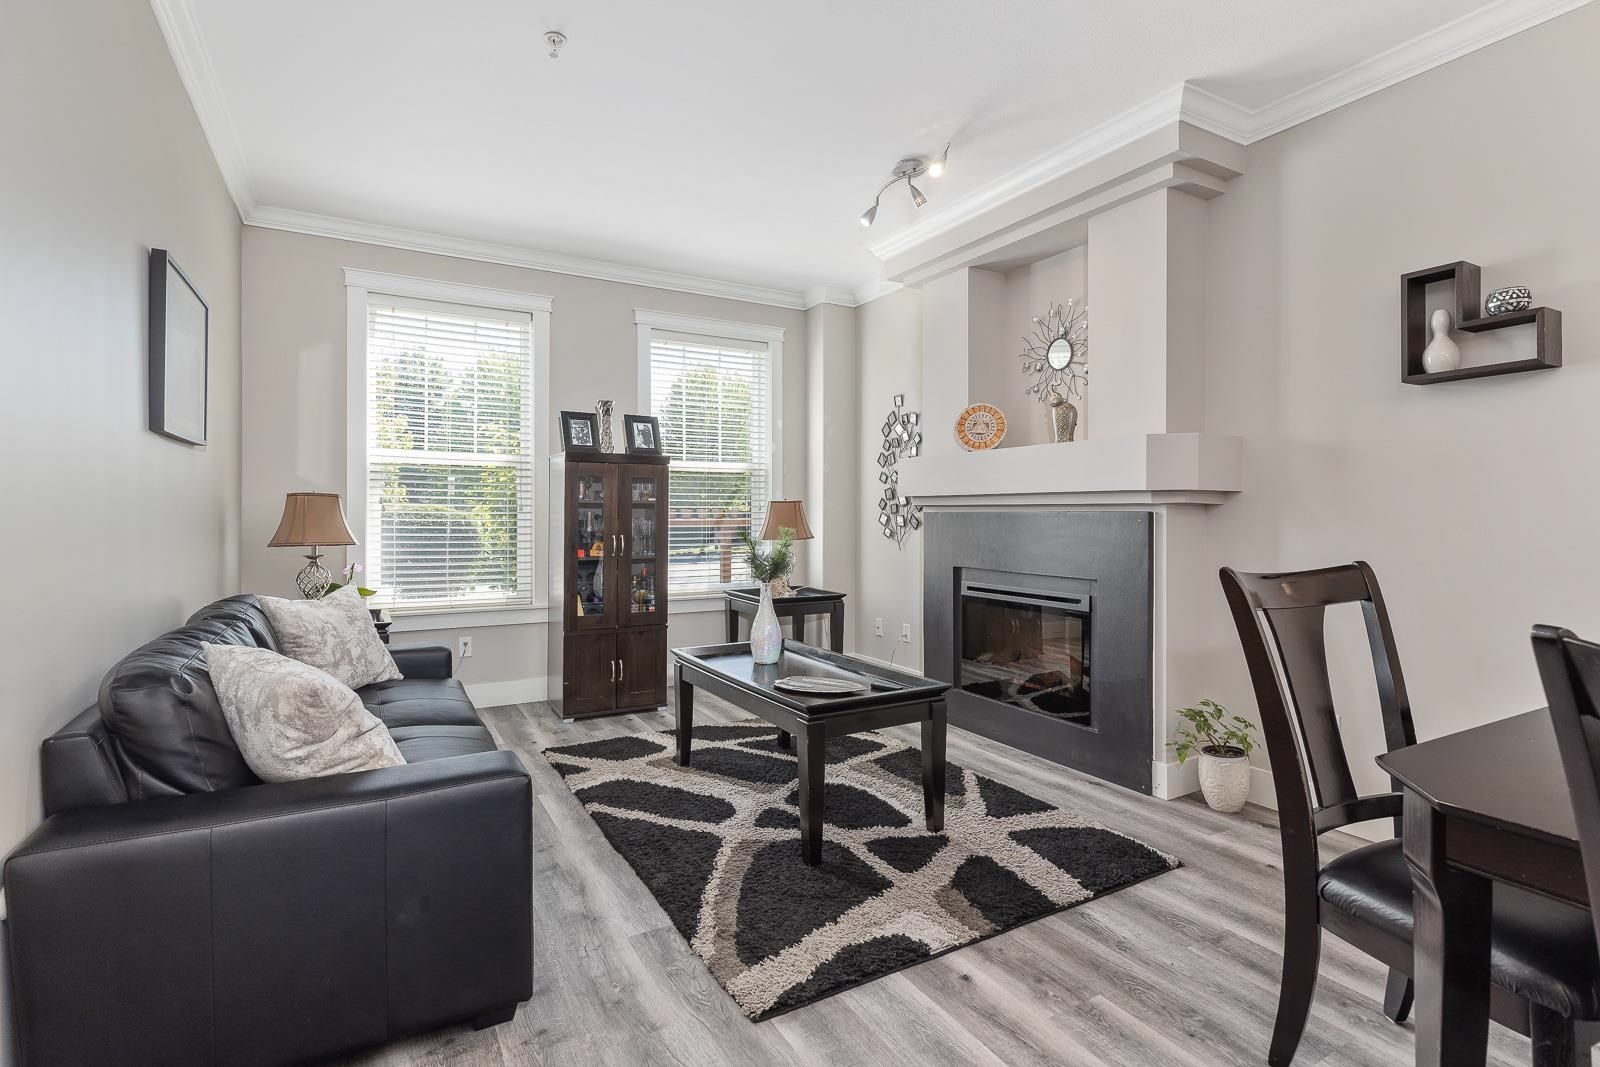 """Main Photo: 21145 80 Avenue in Langley: Willoughby Heights Condo for sale in """"YORKVILLE"""" : MLS®# R2597034"""